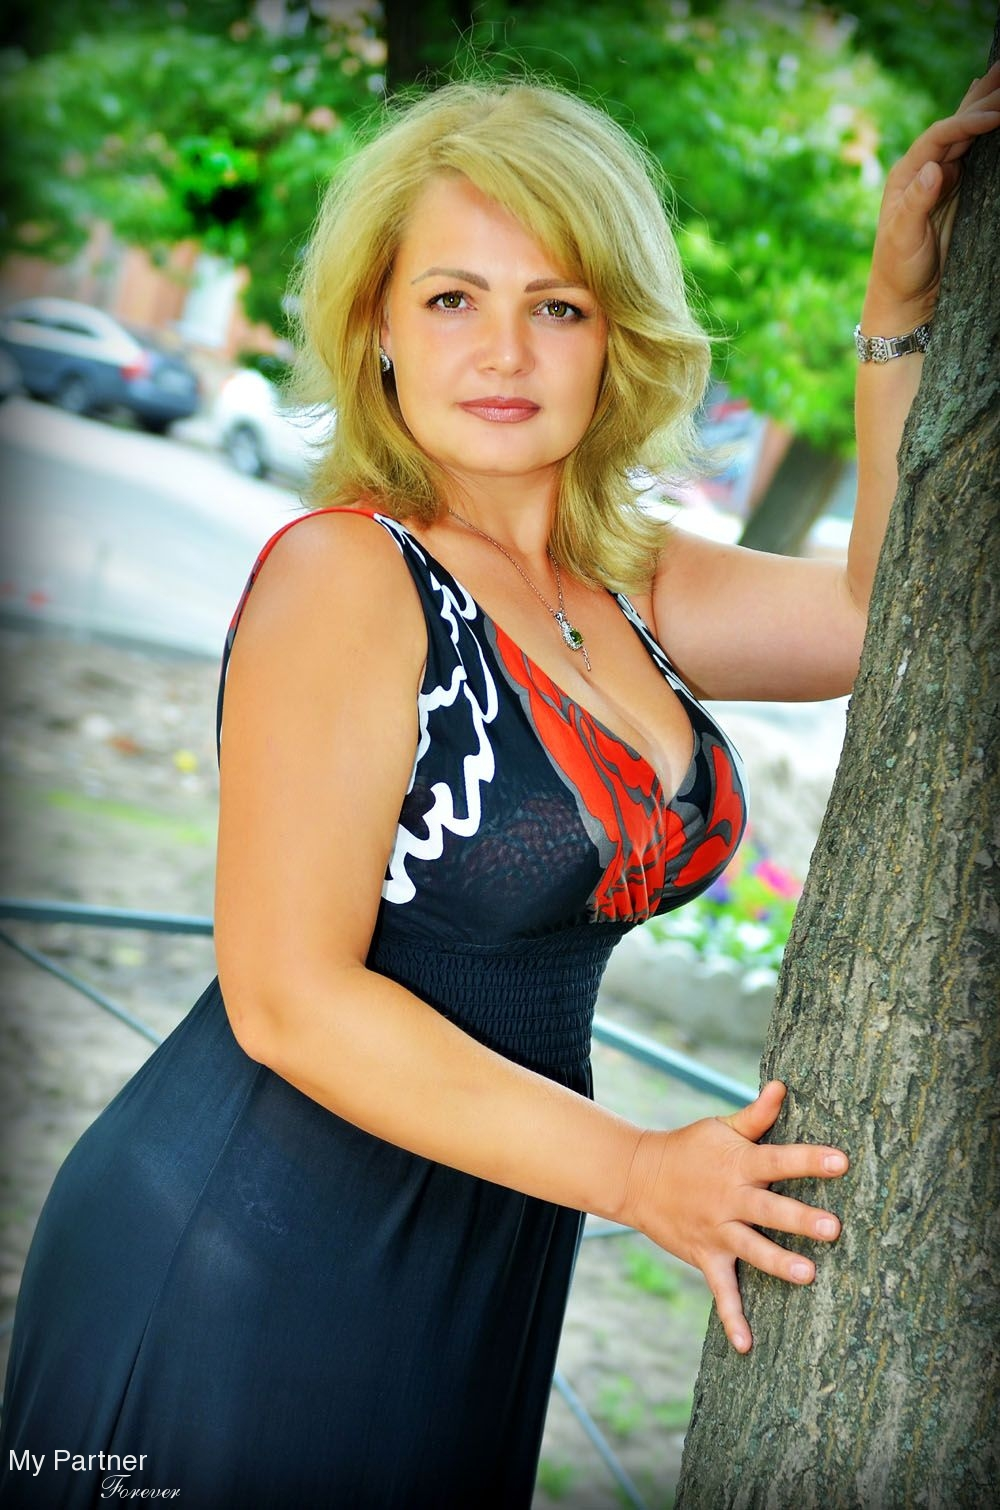 mottville divorced singles dating site Our free dating site is for you if you want to find fat singles to get cozy with it will not cost you a penny and we have many potential overweight dates for you to choose from, free fat.